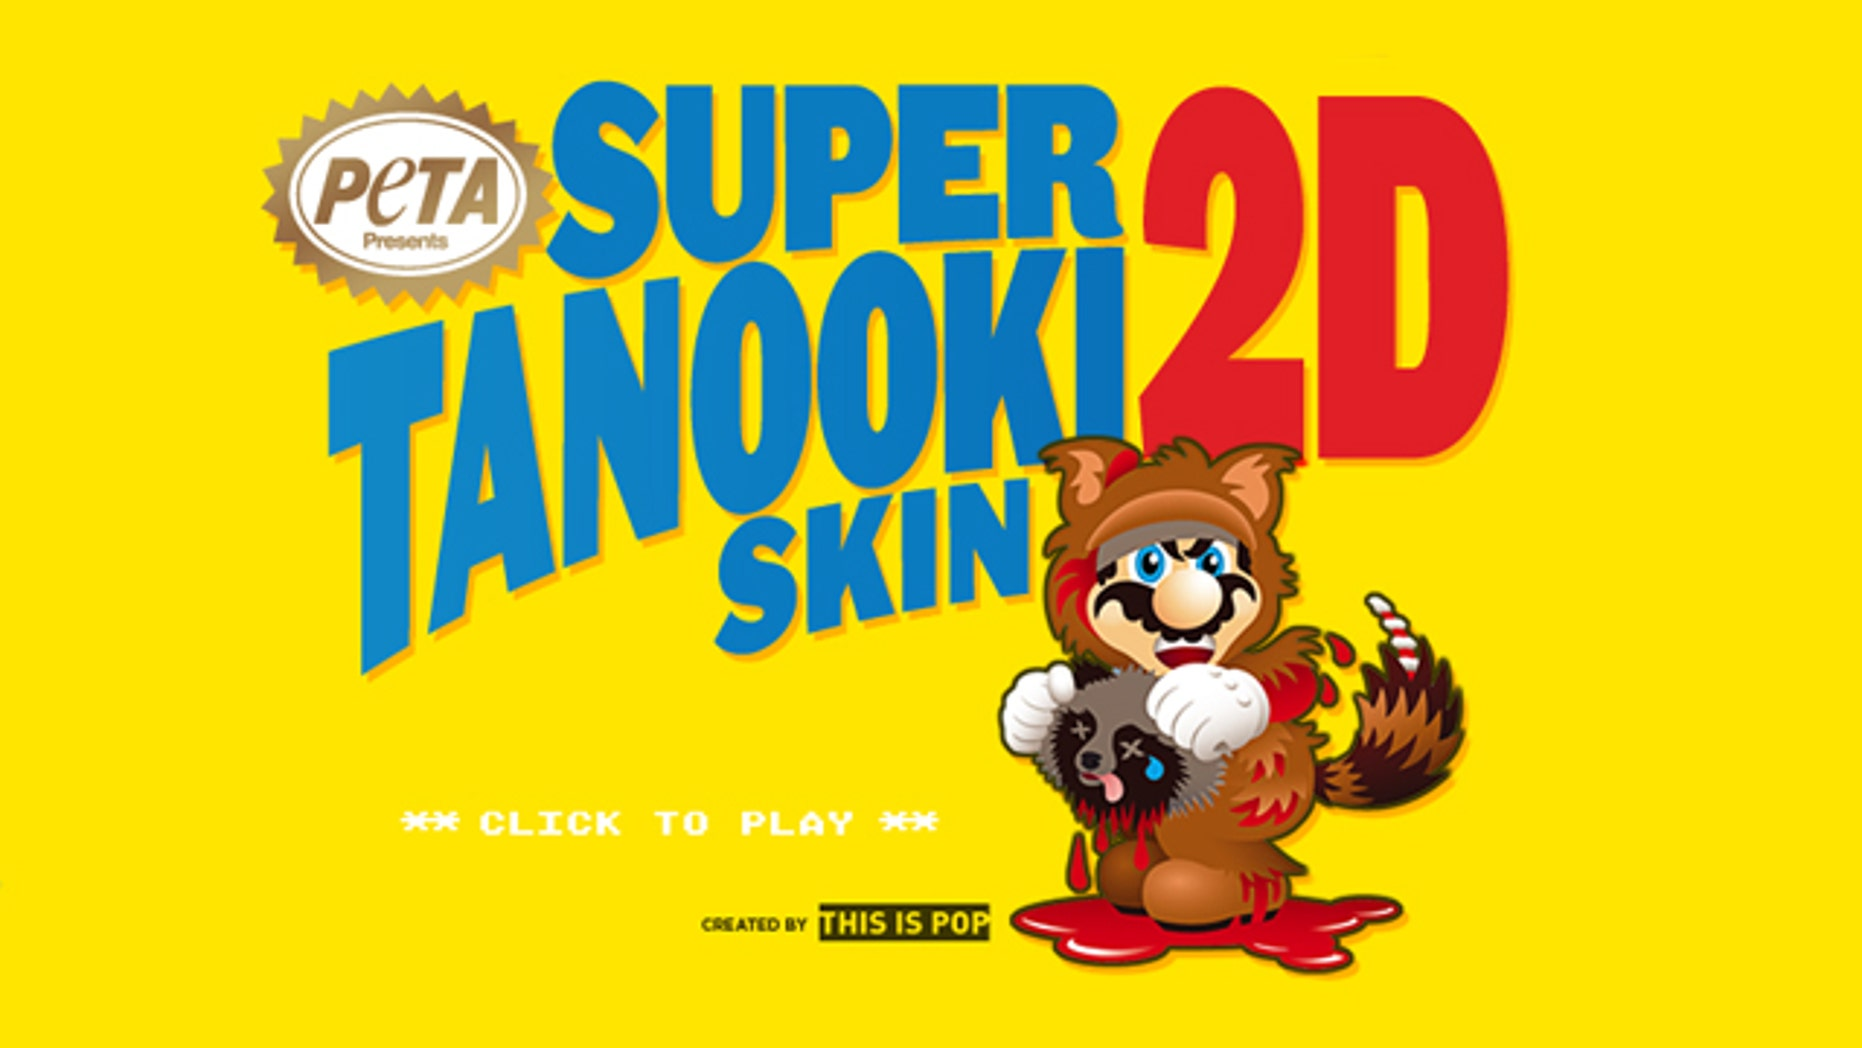 PETA has even created its own satirical game called Super Tanooki Skin 2D in which a skinless Tanooki chases Mario, trying to get his skin back.